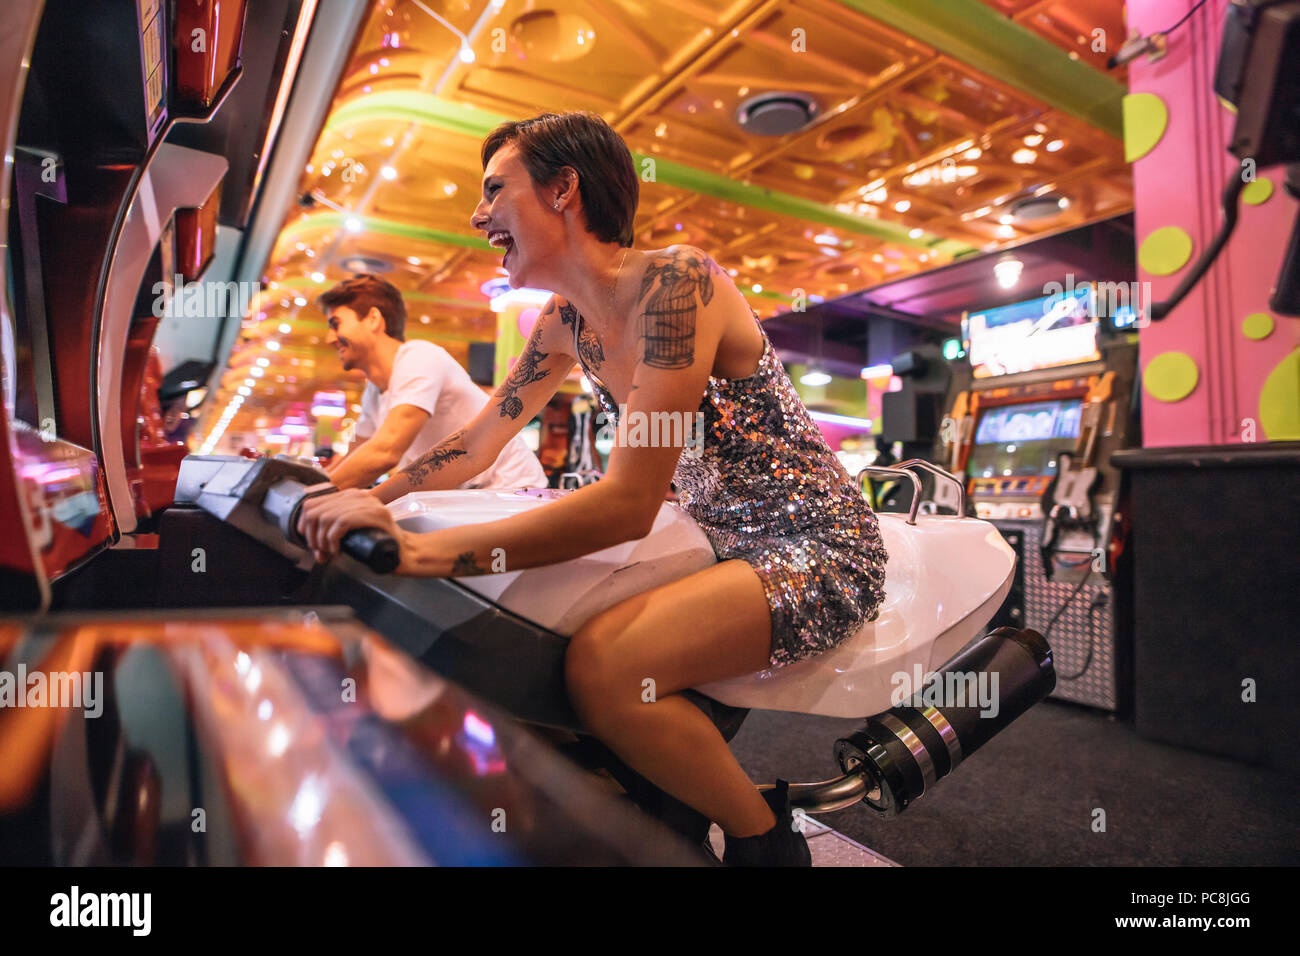 Happy couple having fun playing arcade racing games at a gaming parlour. Excited woman playing a racing game sitting on an arcade racing bike. - Stock Image